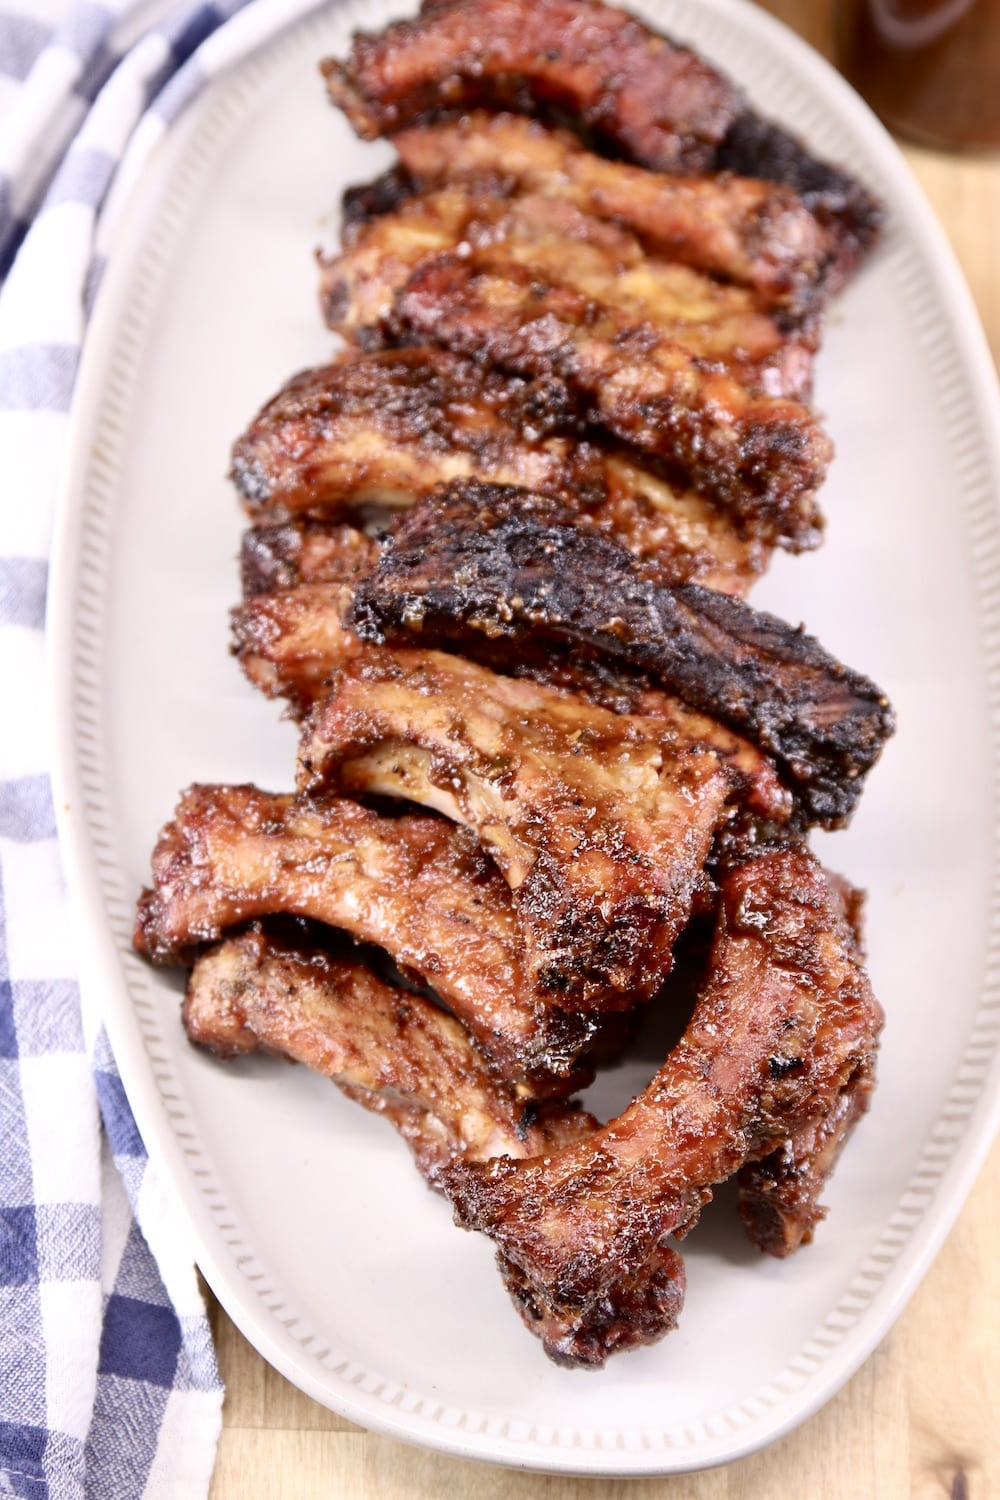 Barbecued Baby back ribs on a white oval platter